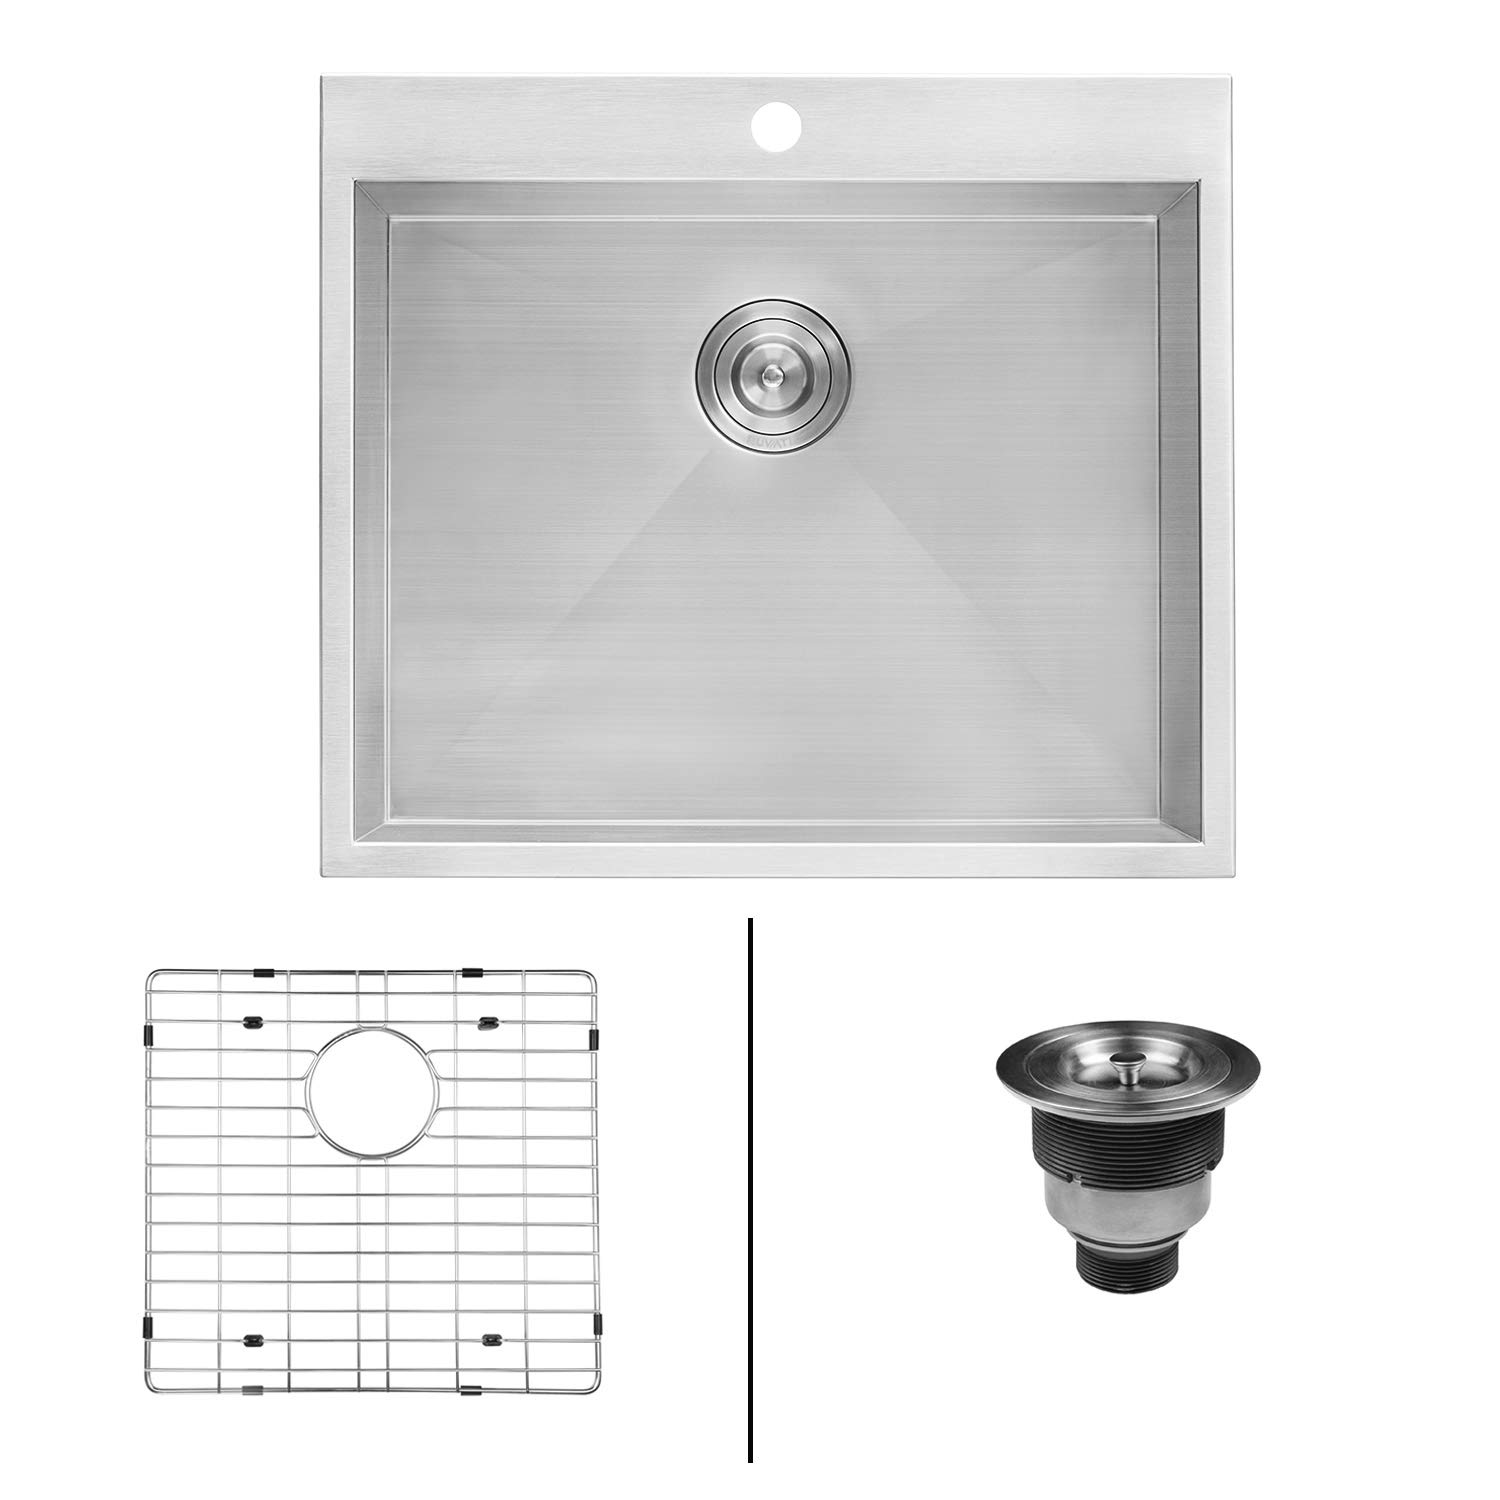 Deep Sink For Laundry Room.Best Rated In Laundry Utility Room Sinks Helpful